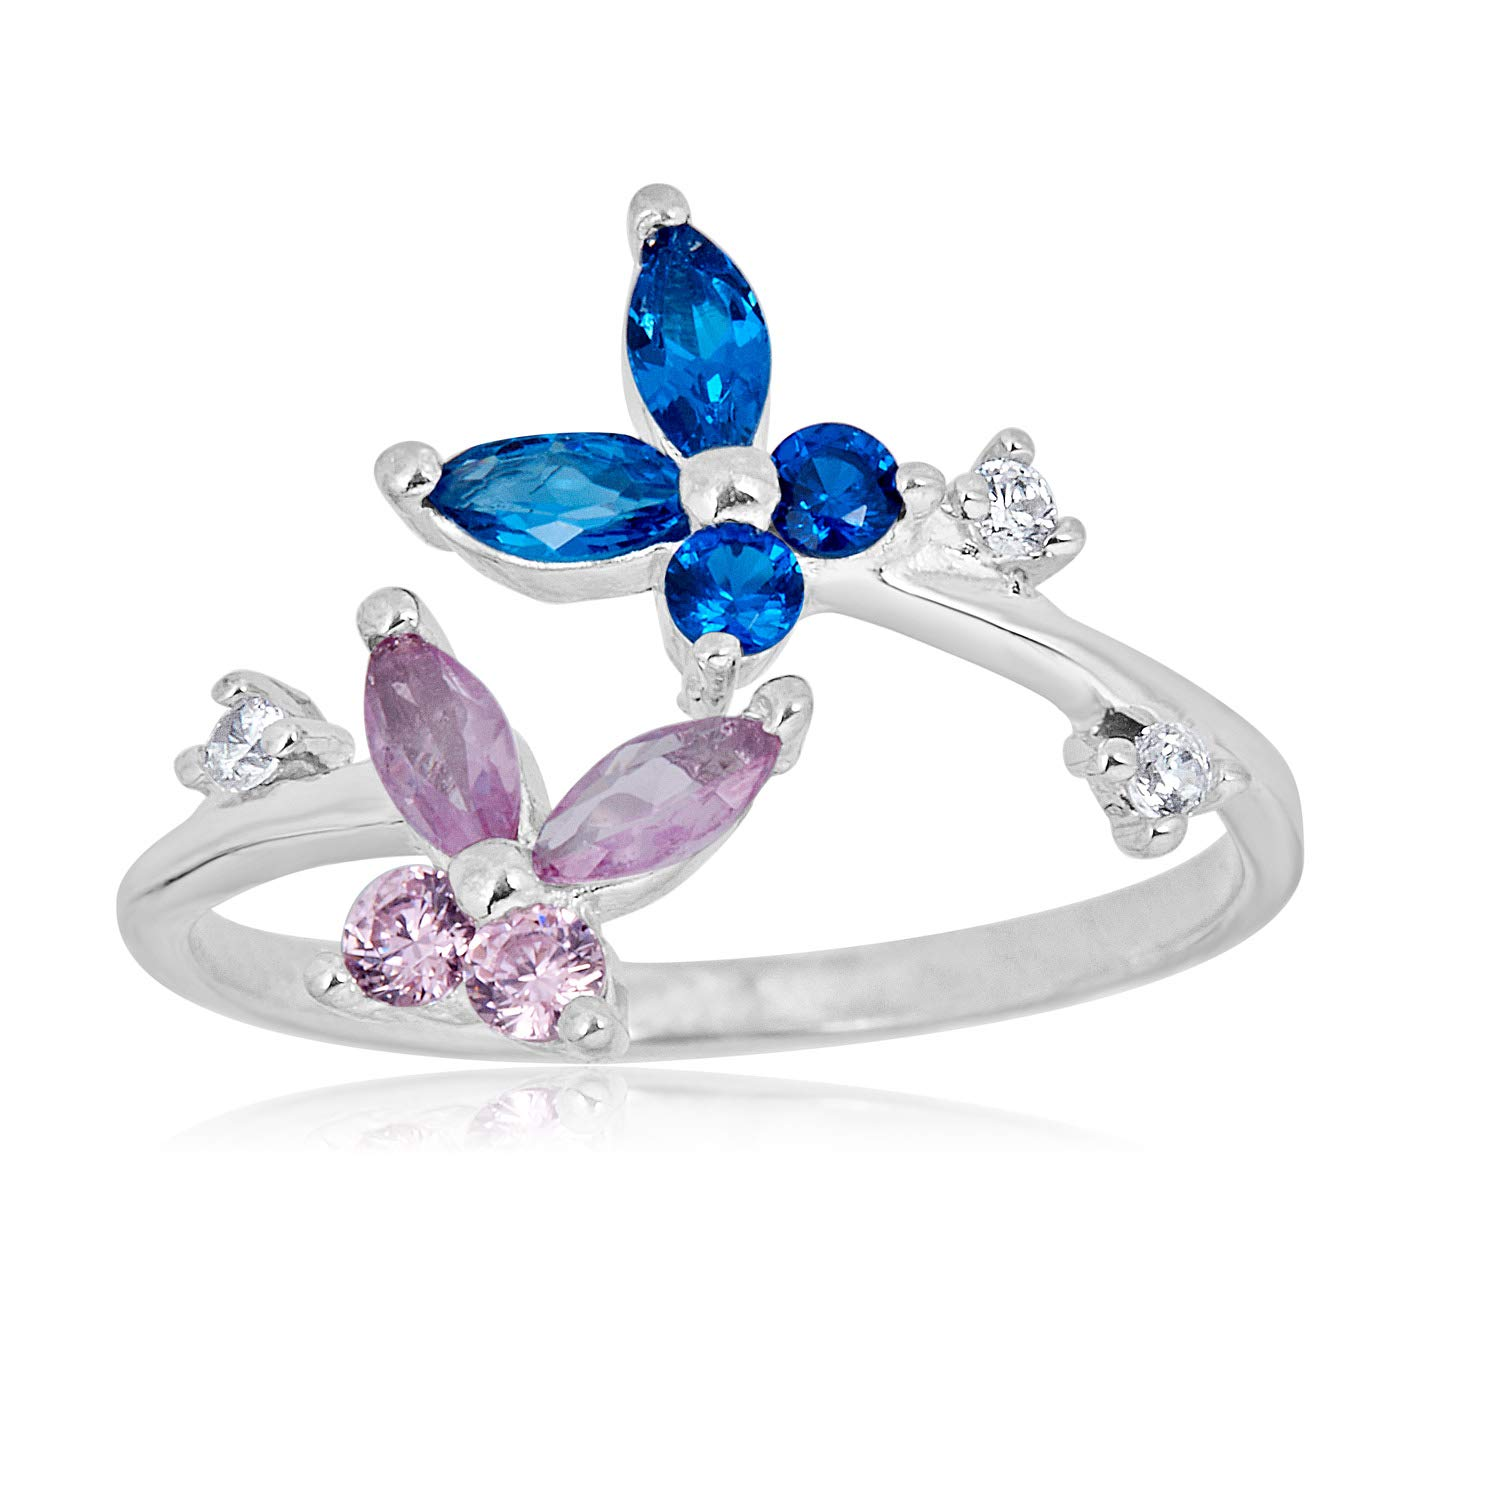 AVORA 925 Sterling Silver Adjustable Butterfly Toe Ring with Pink and Blue Simulated Diamond CZ by AVORA